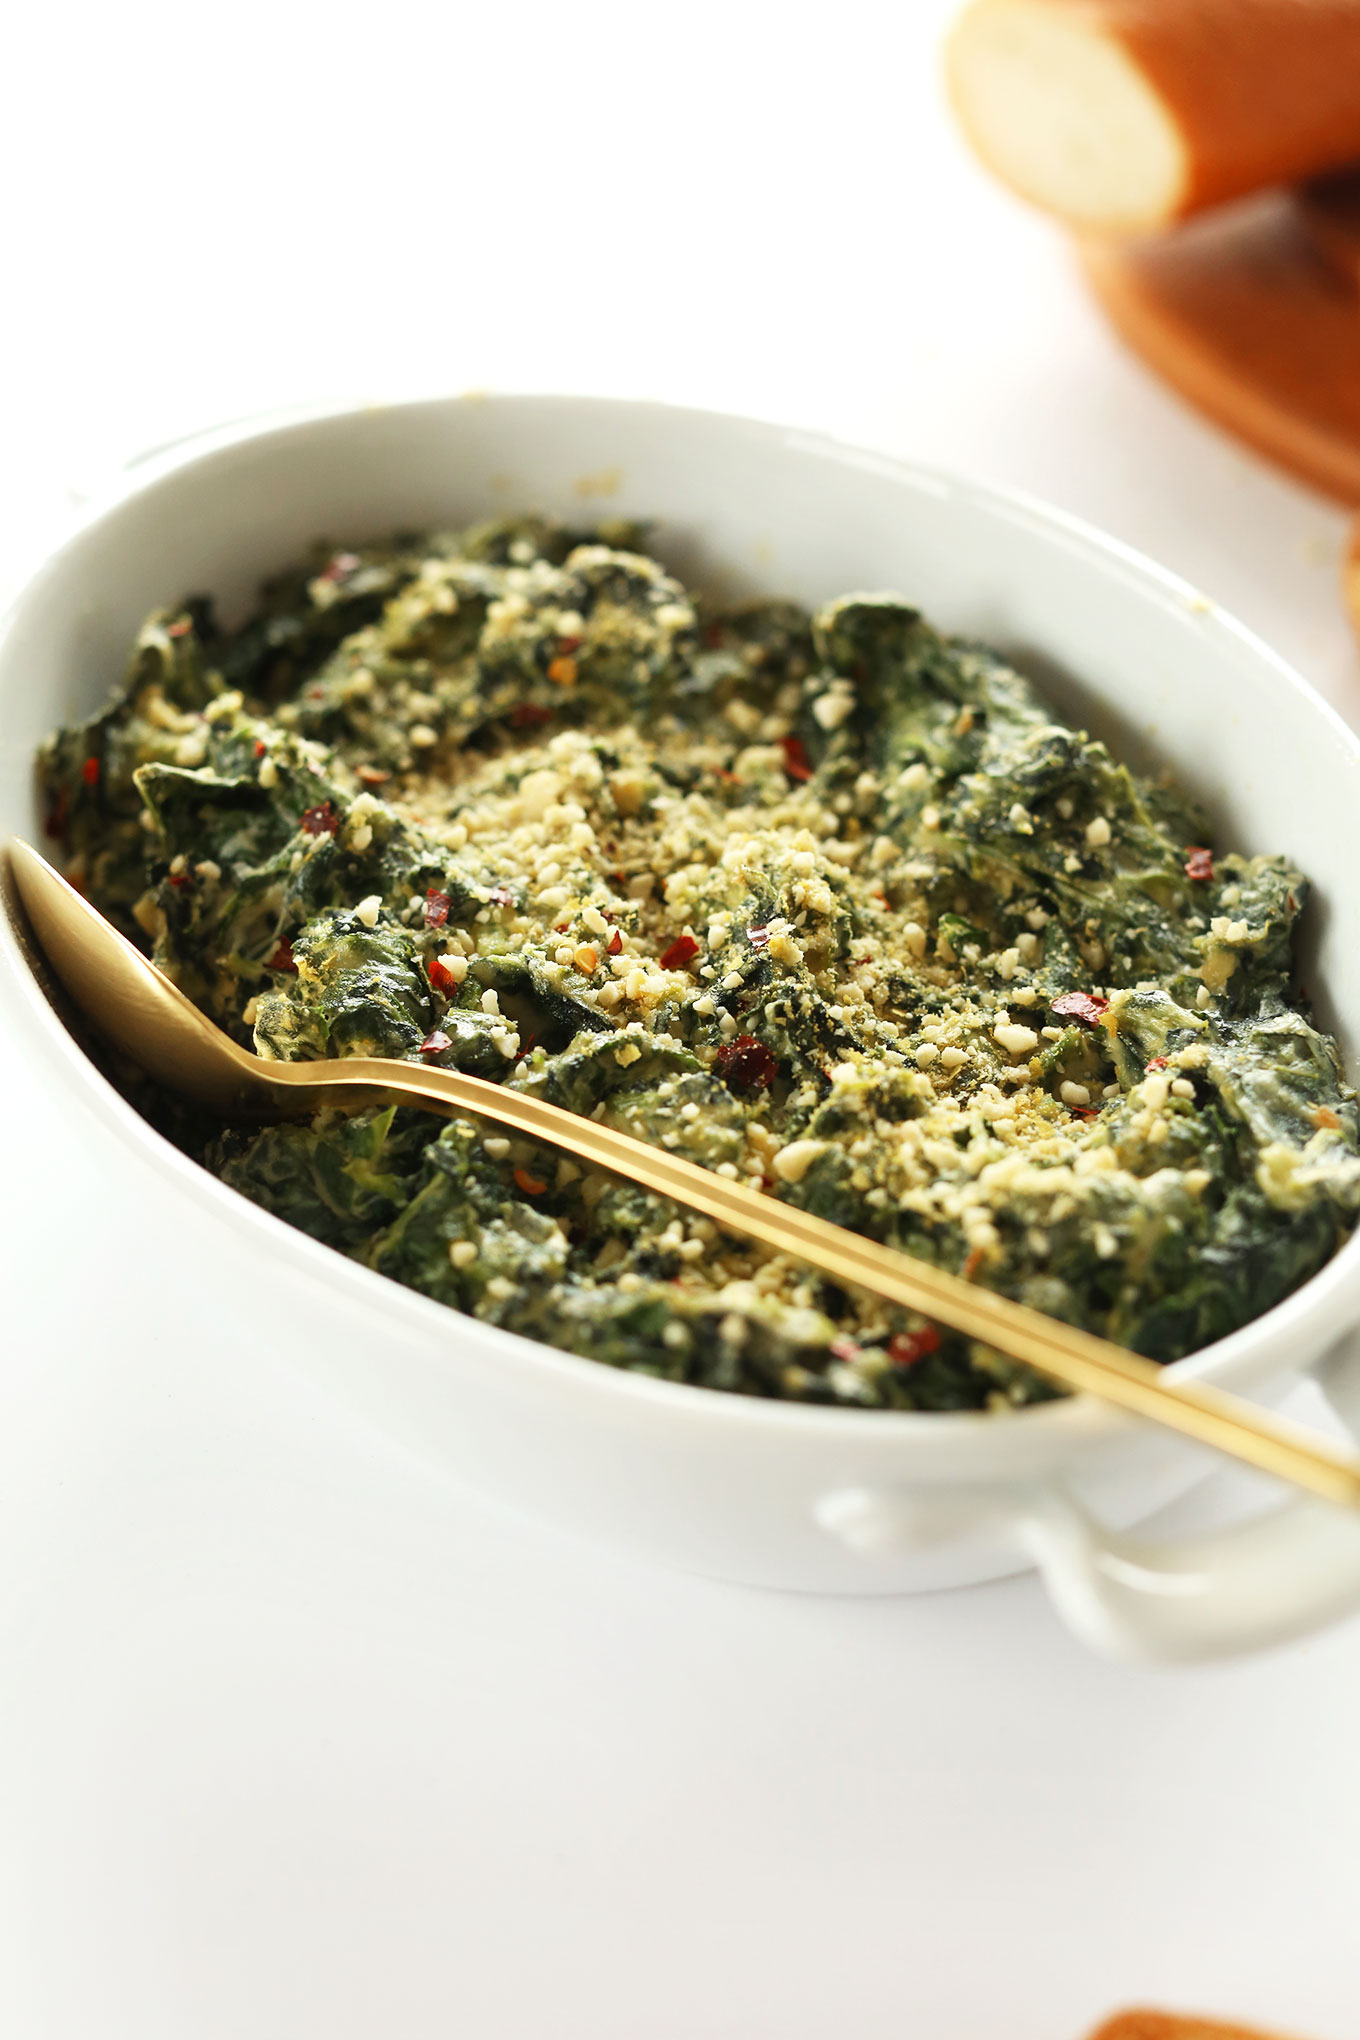 AMAZING Kale and Spinach Dip! So simple, fast, and the perfect healthy appetizer! #vegan #gf #appetizer #minimalistbaker